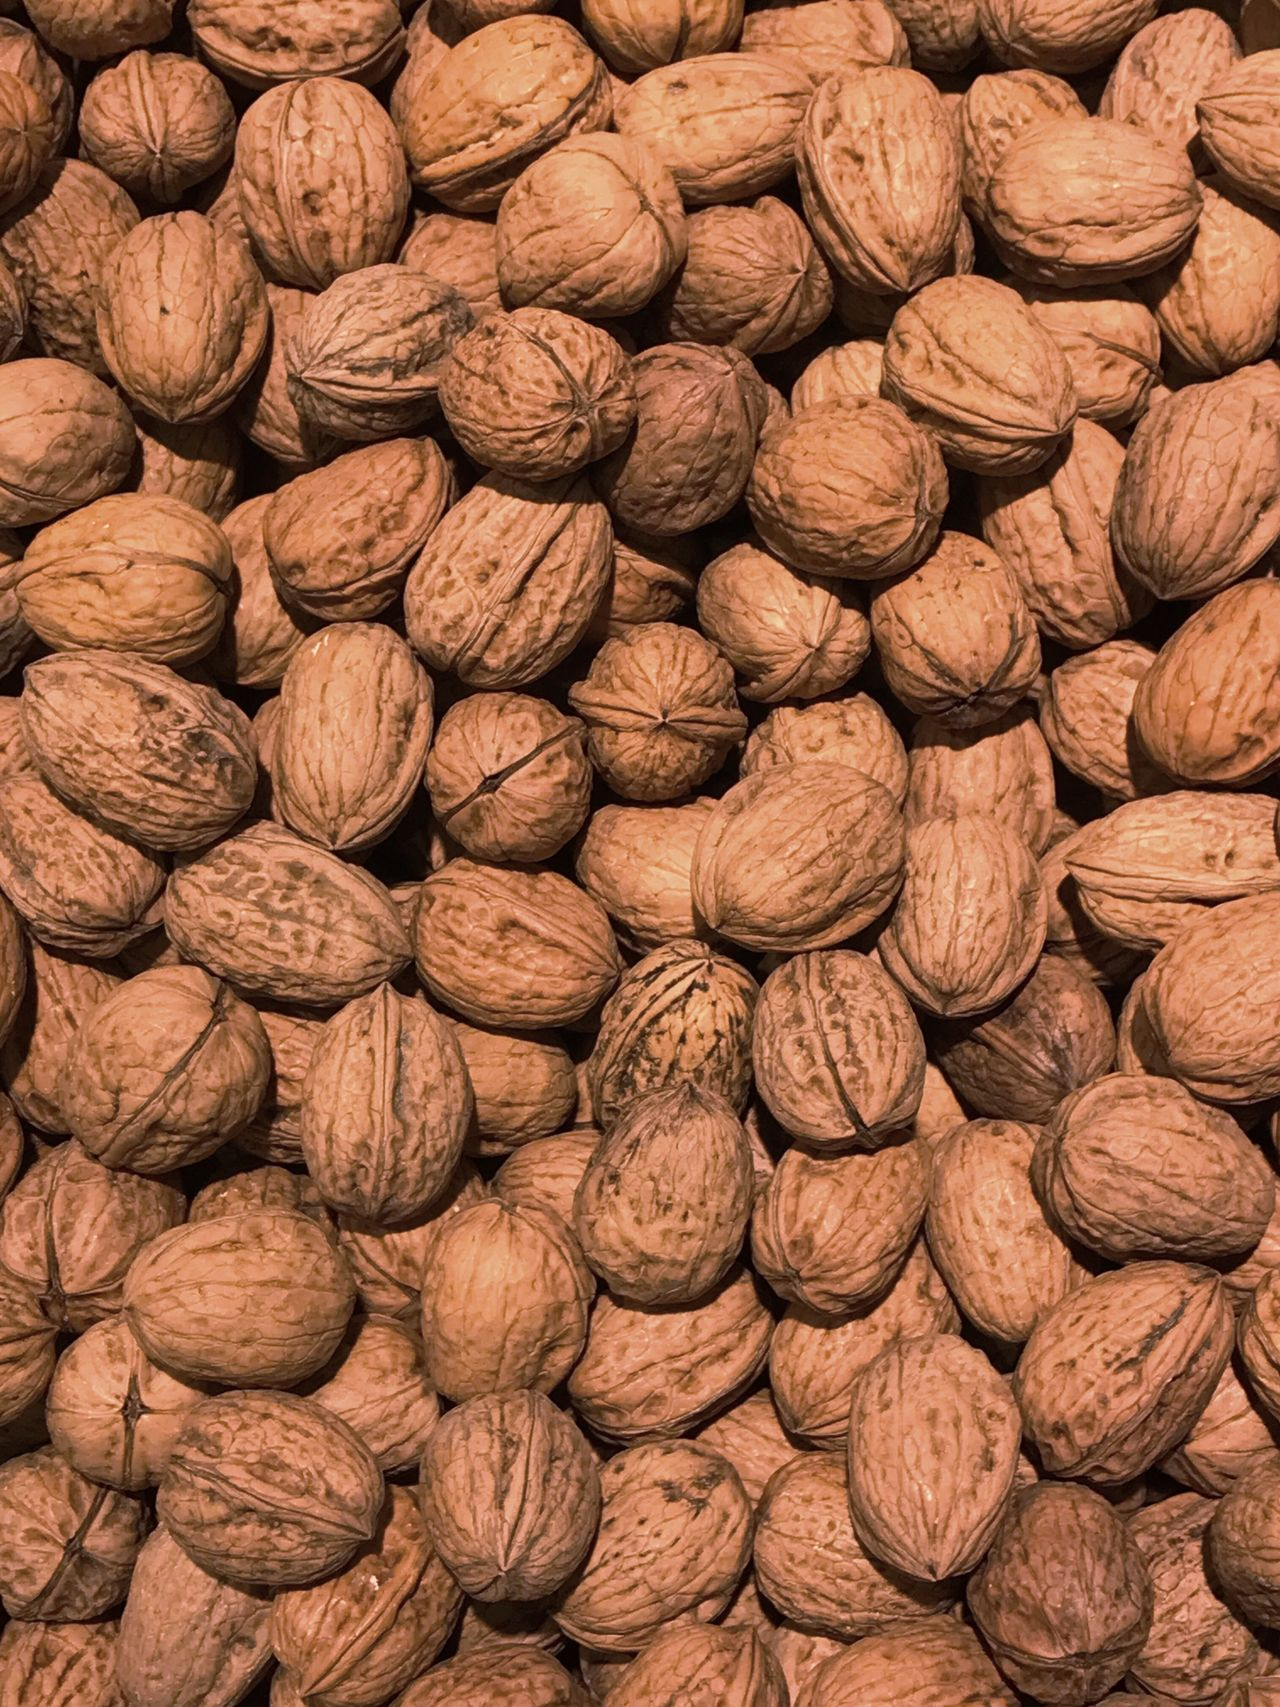 Nut - Food Nutshell Food And Drink Walnut Food Full Frame Healthy Eating Backgrounds Large Group Of Objects Dried Fruit Dried Food Abundance Textured  Brown Close-up No People Freshness Fruit Indoors  Day